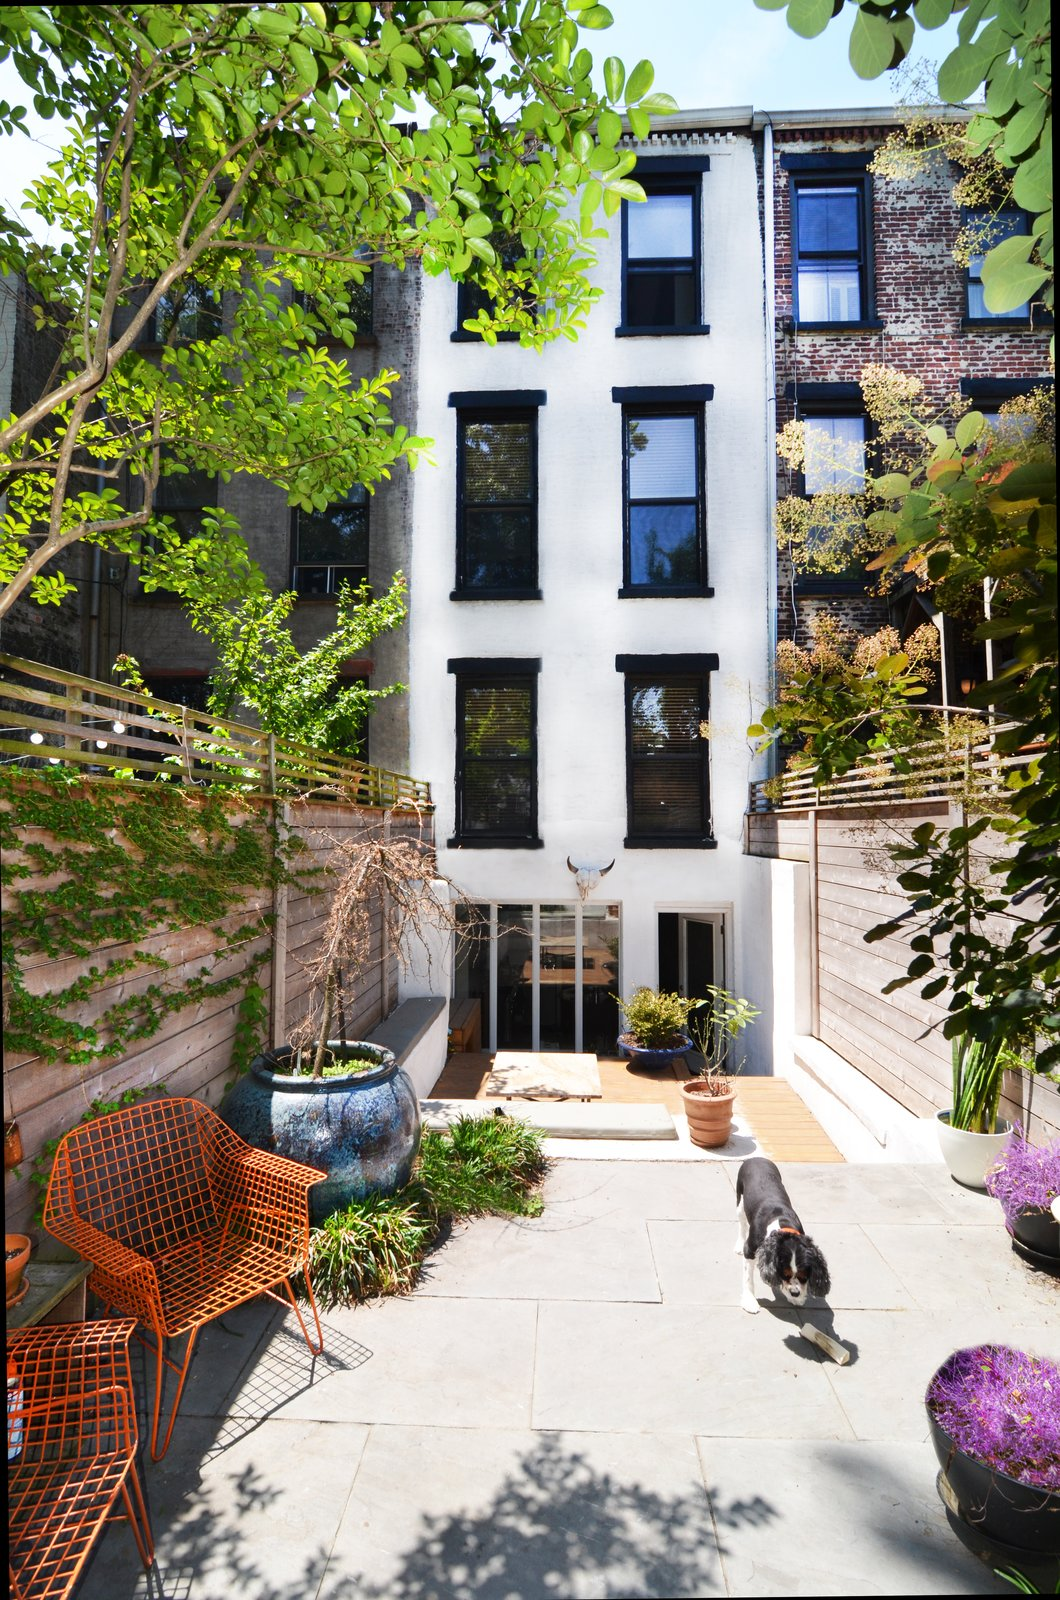 Outdoor, Wood Patio, Porch, Deck, Trees, Pavers Patio, Porch, Deck, Back Yard, and Raised Planters  Photo 2 of 16 in A Design Duo's 19th-Century Brooklyn Townhouse Is Filled With Art They Love